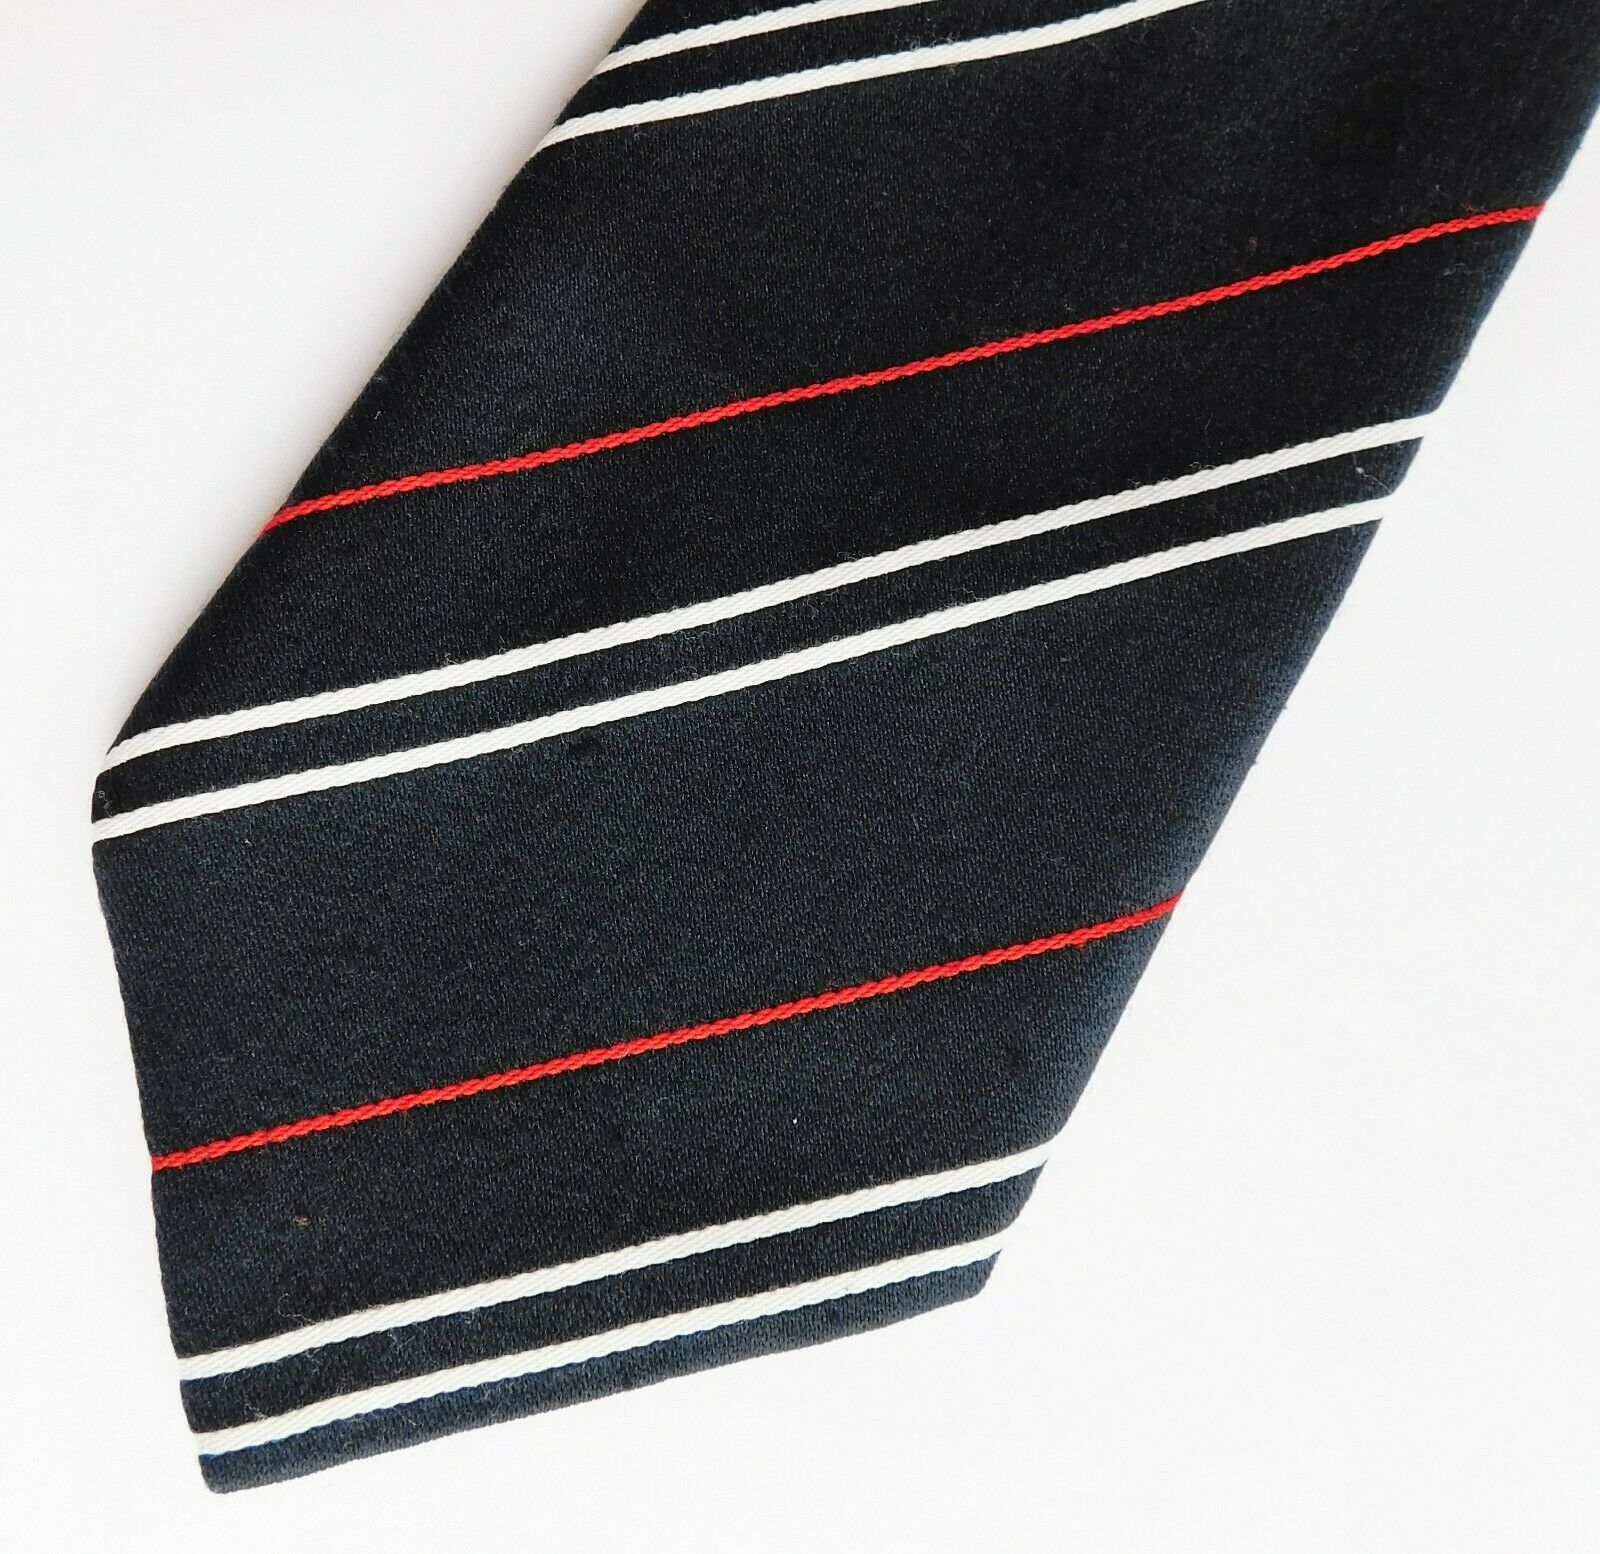 Vintage Tootal striped tie very dark navy blue with red and white stripes